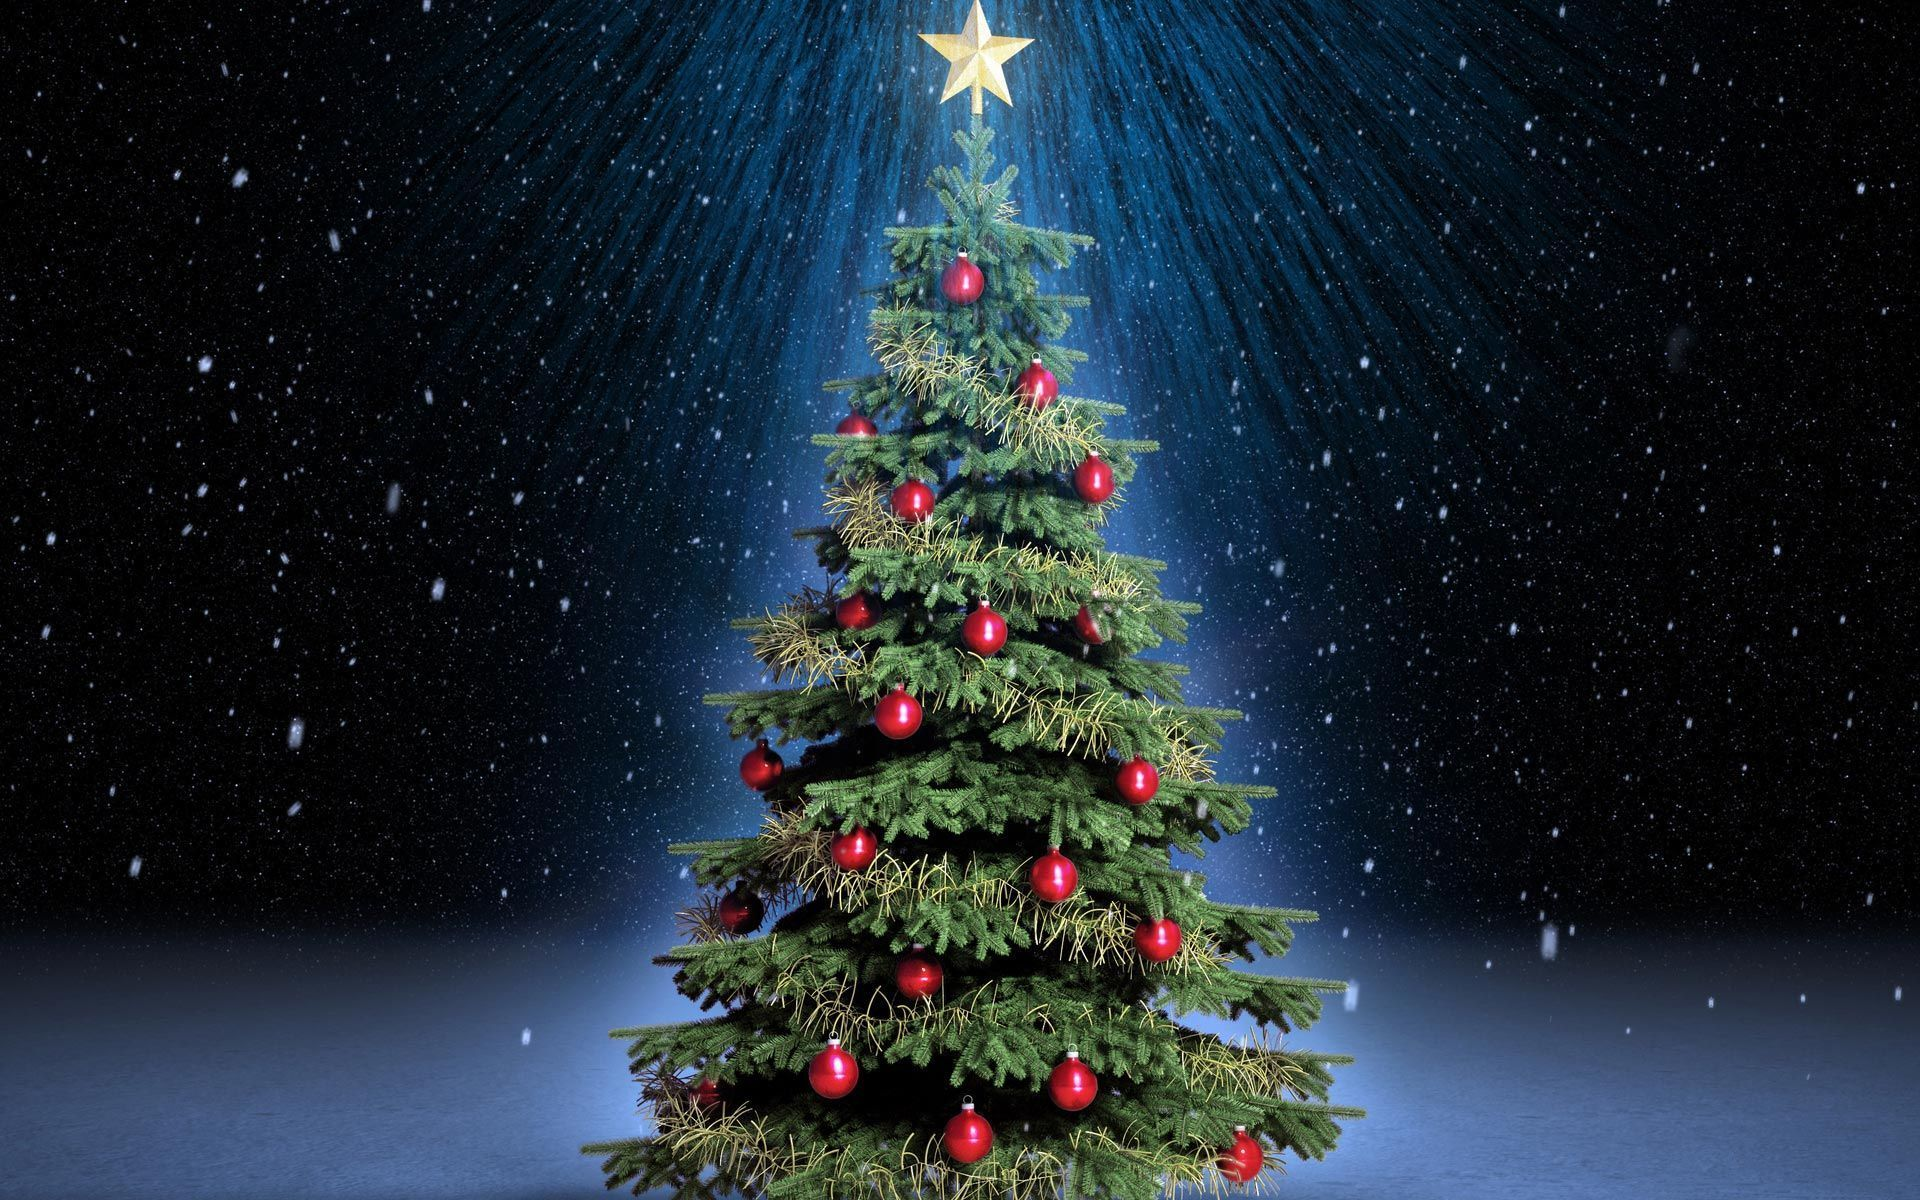 Ordinary Free Wallpaper Christmas Tree Part - 3: Christmas Tree Wallpapers Free - Wallpaper Cave